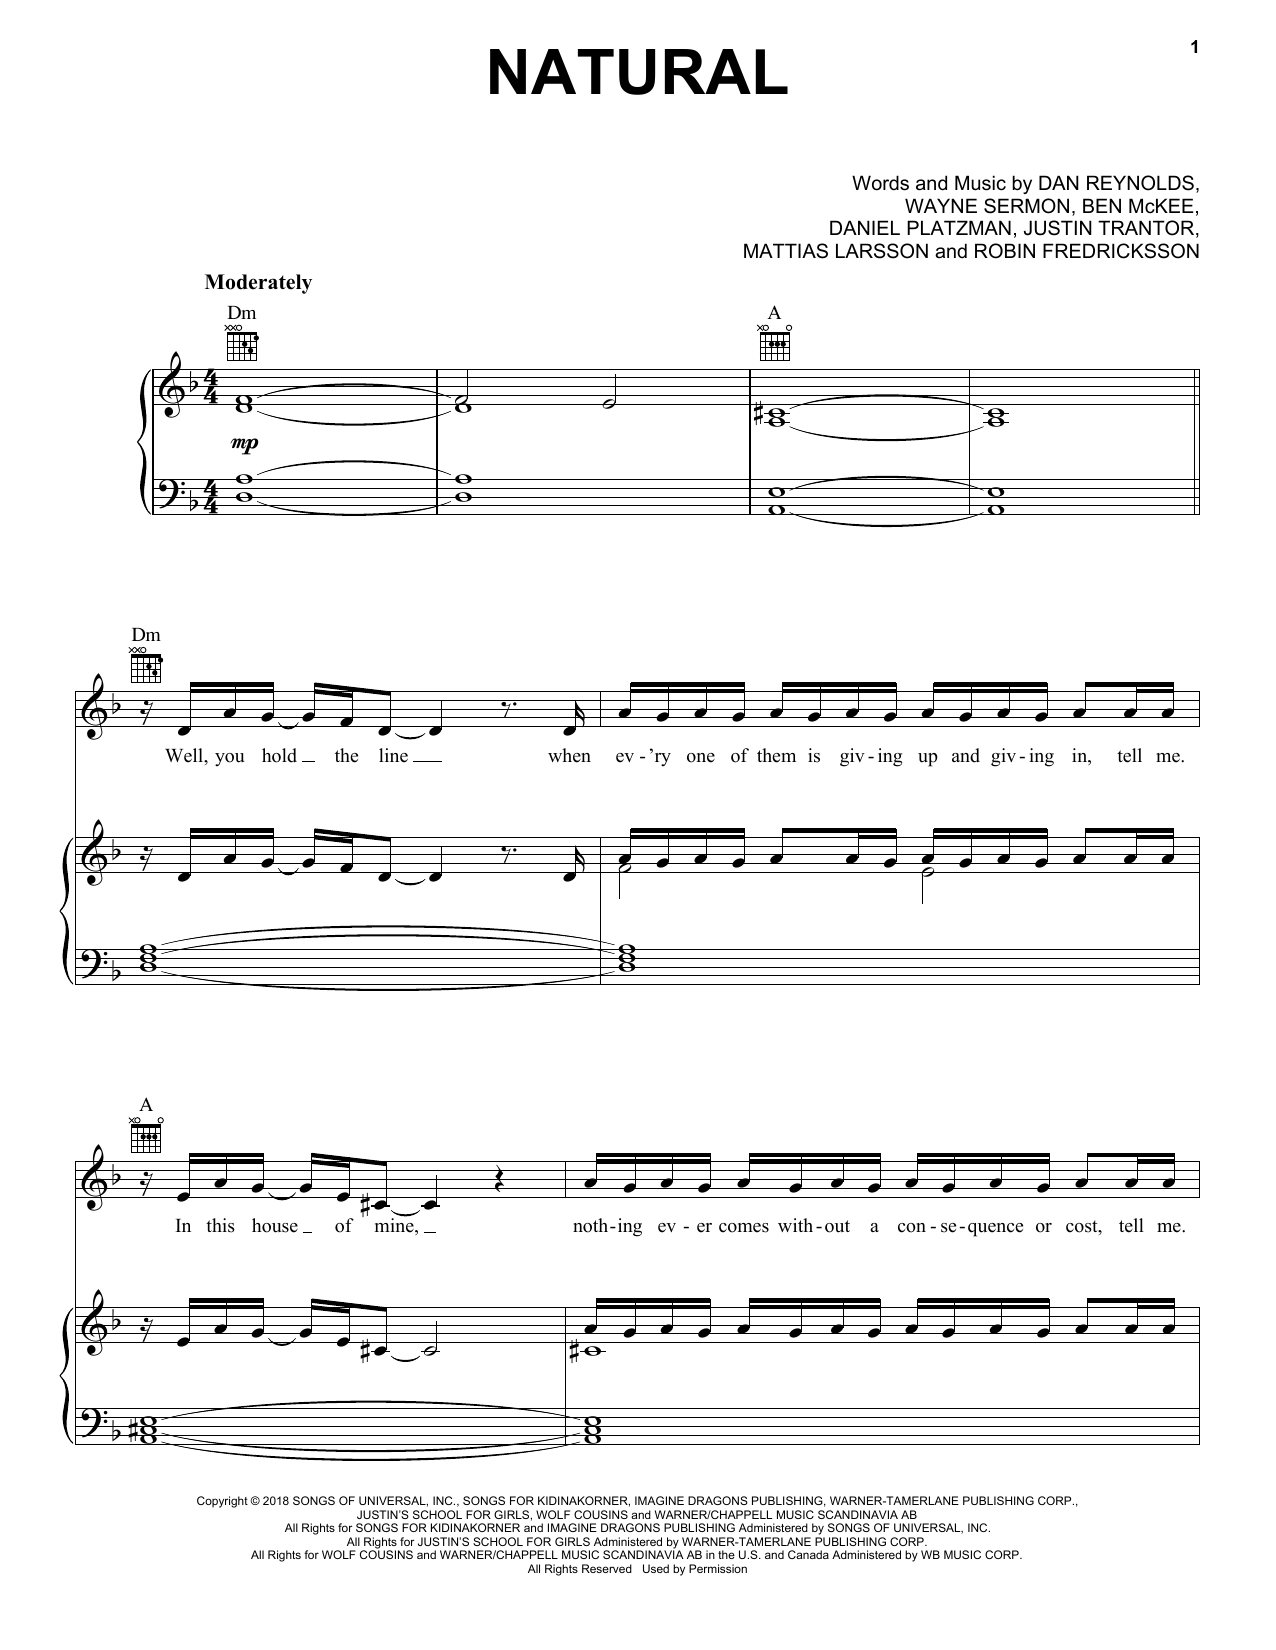 Imagine Dragons Natural sheet music notes and chords. Download Printable PDF.